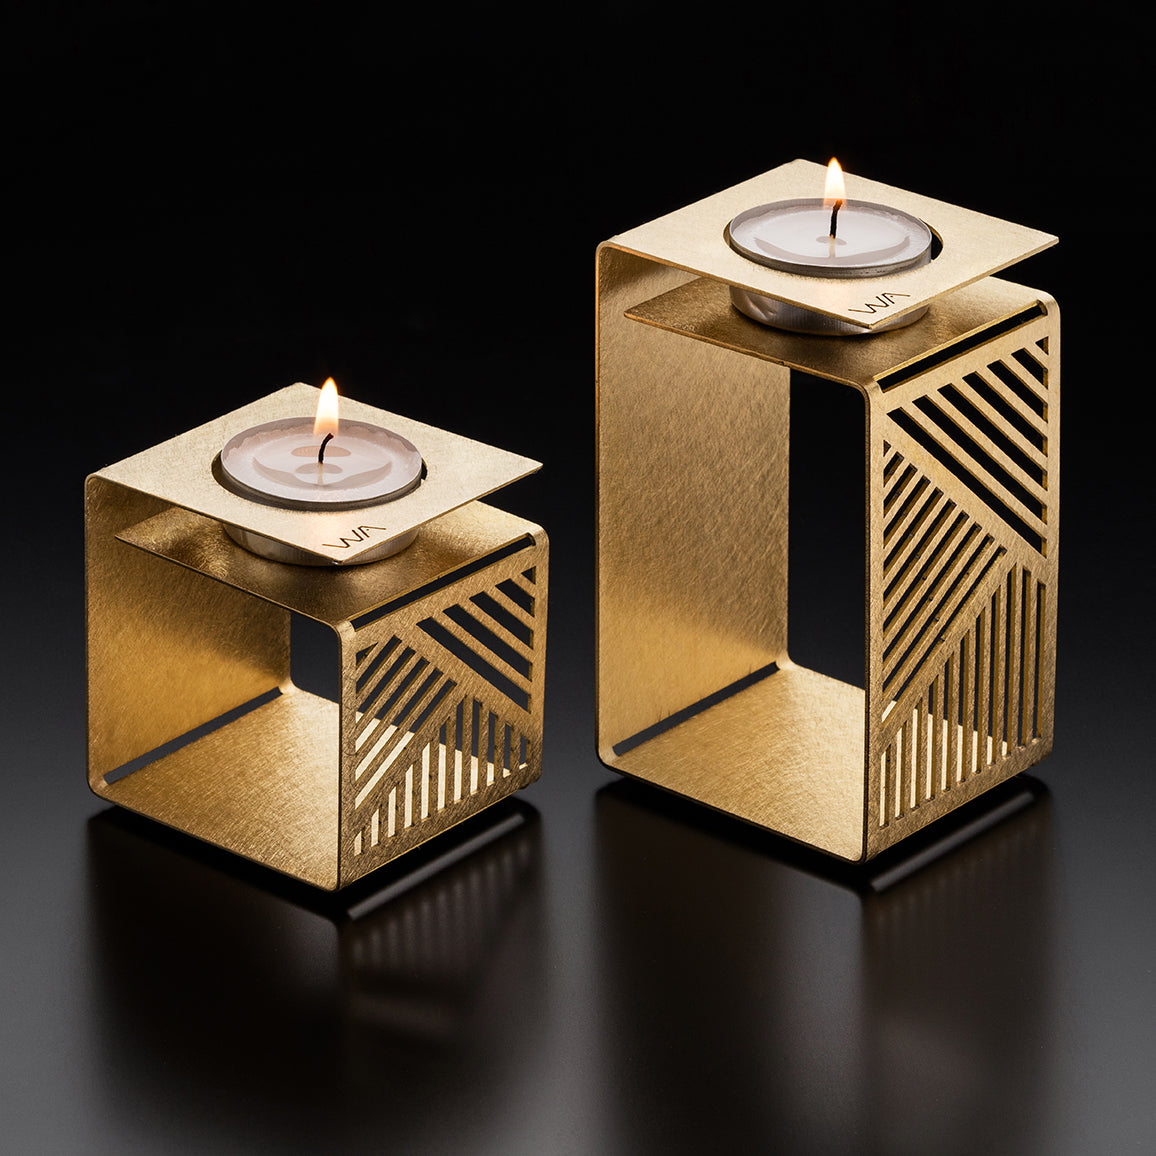 KARL & KLARA - a Set of Geometric Tea Light Holders